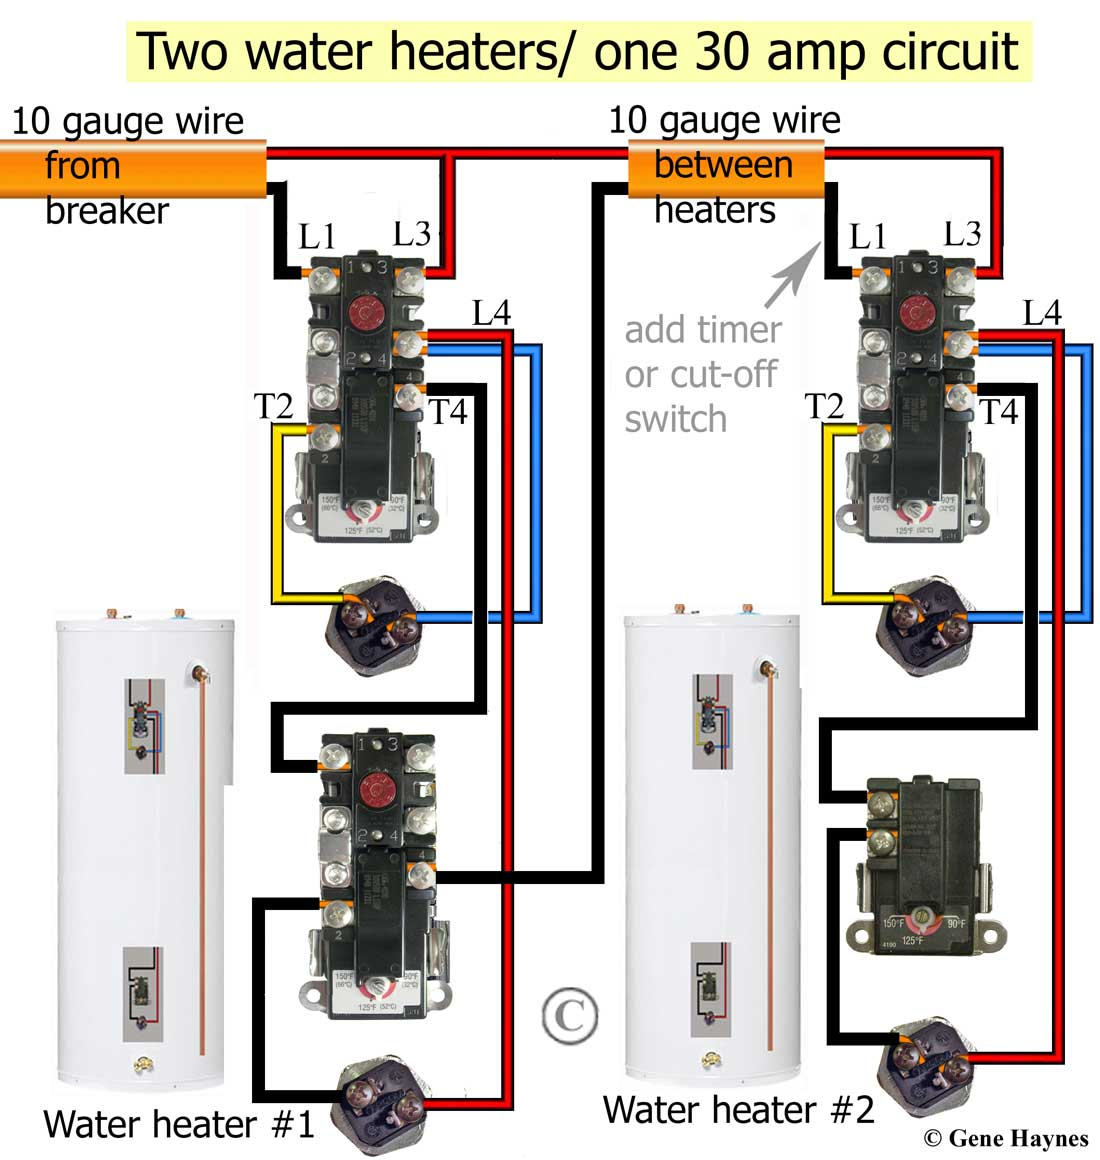 How To Wire Water Heater Thermostats Diagram Two Larger Image Non Simultaneous Control 2 Heaters Wiring Will Heat Top Of Tank First Redundant Turn On As Soon Cold